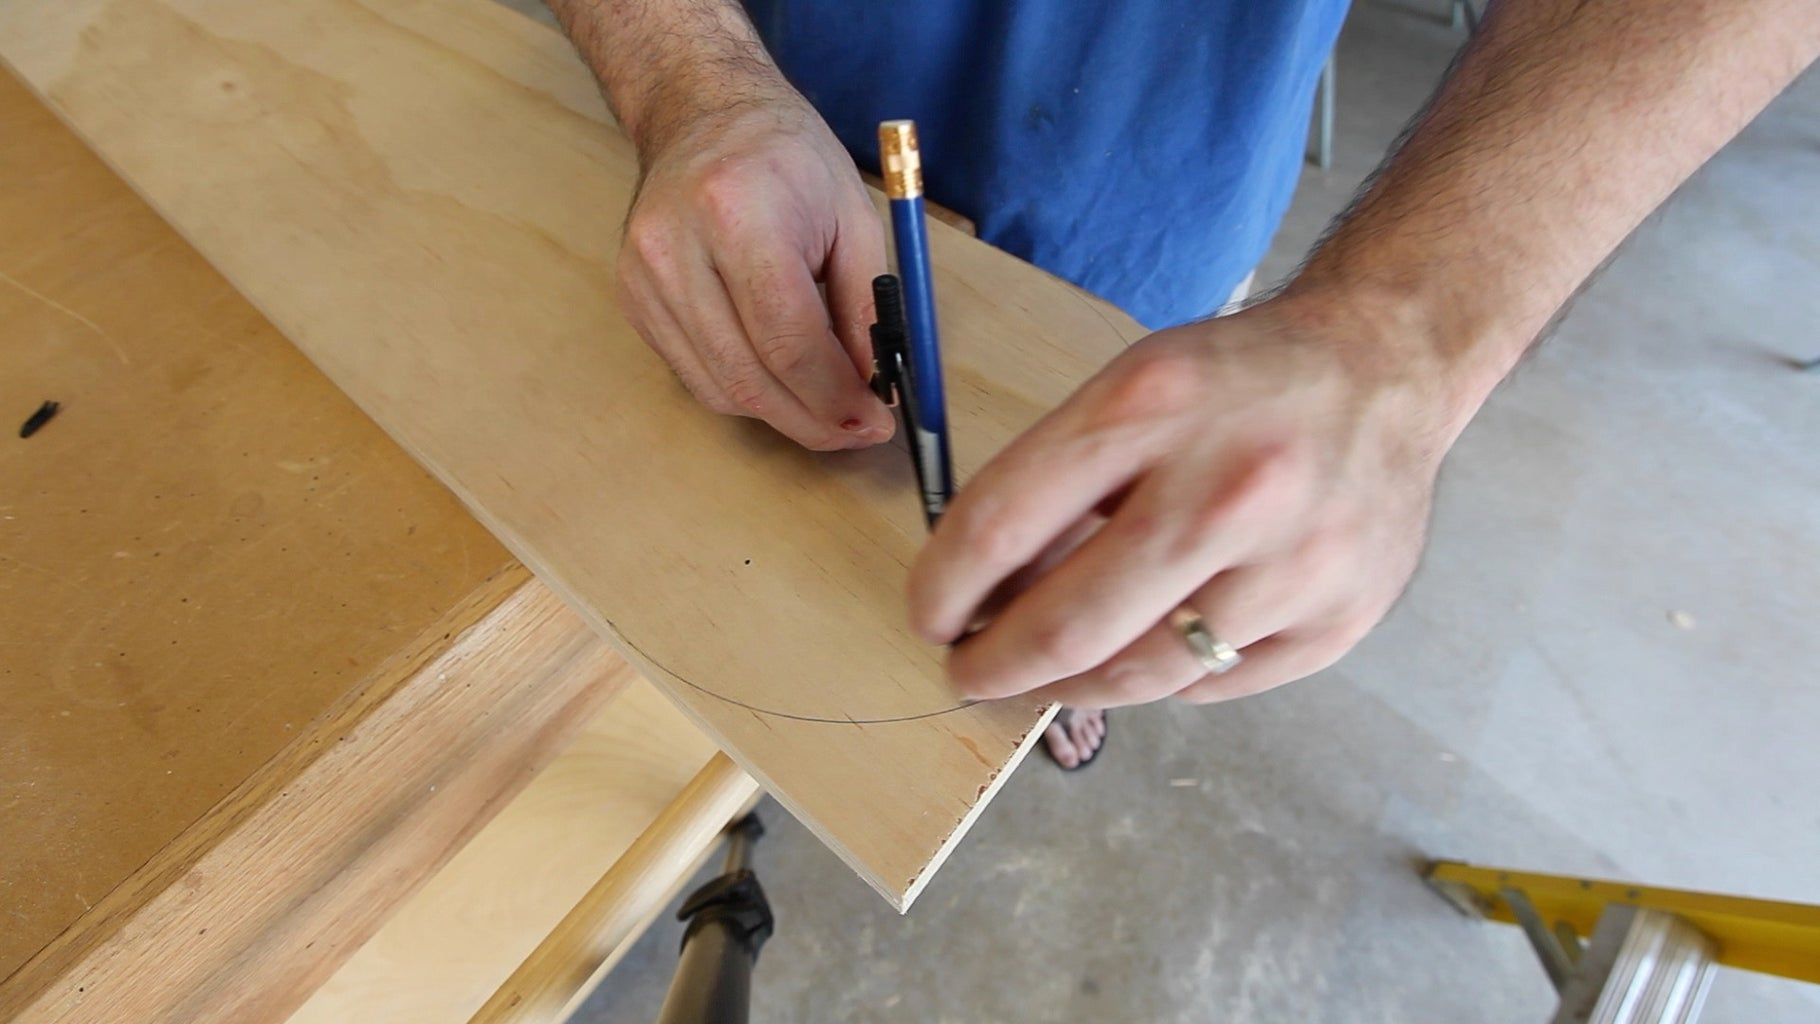 Marking and Drilling the Sides